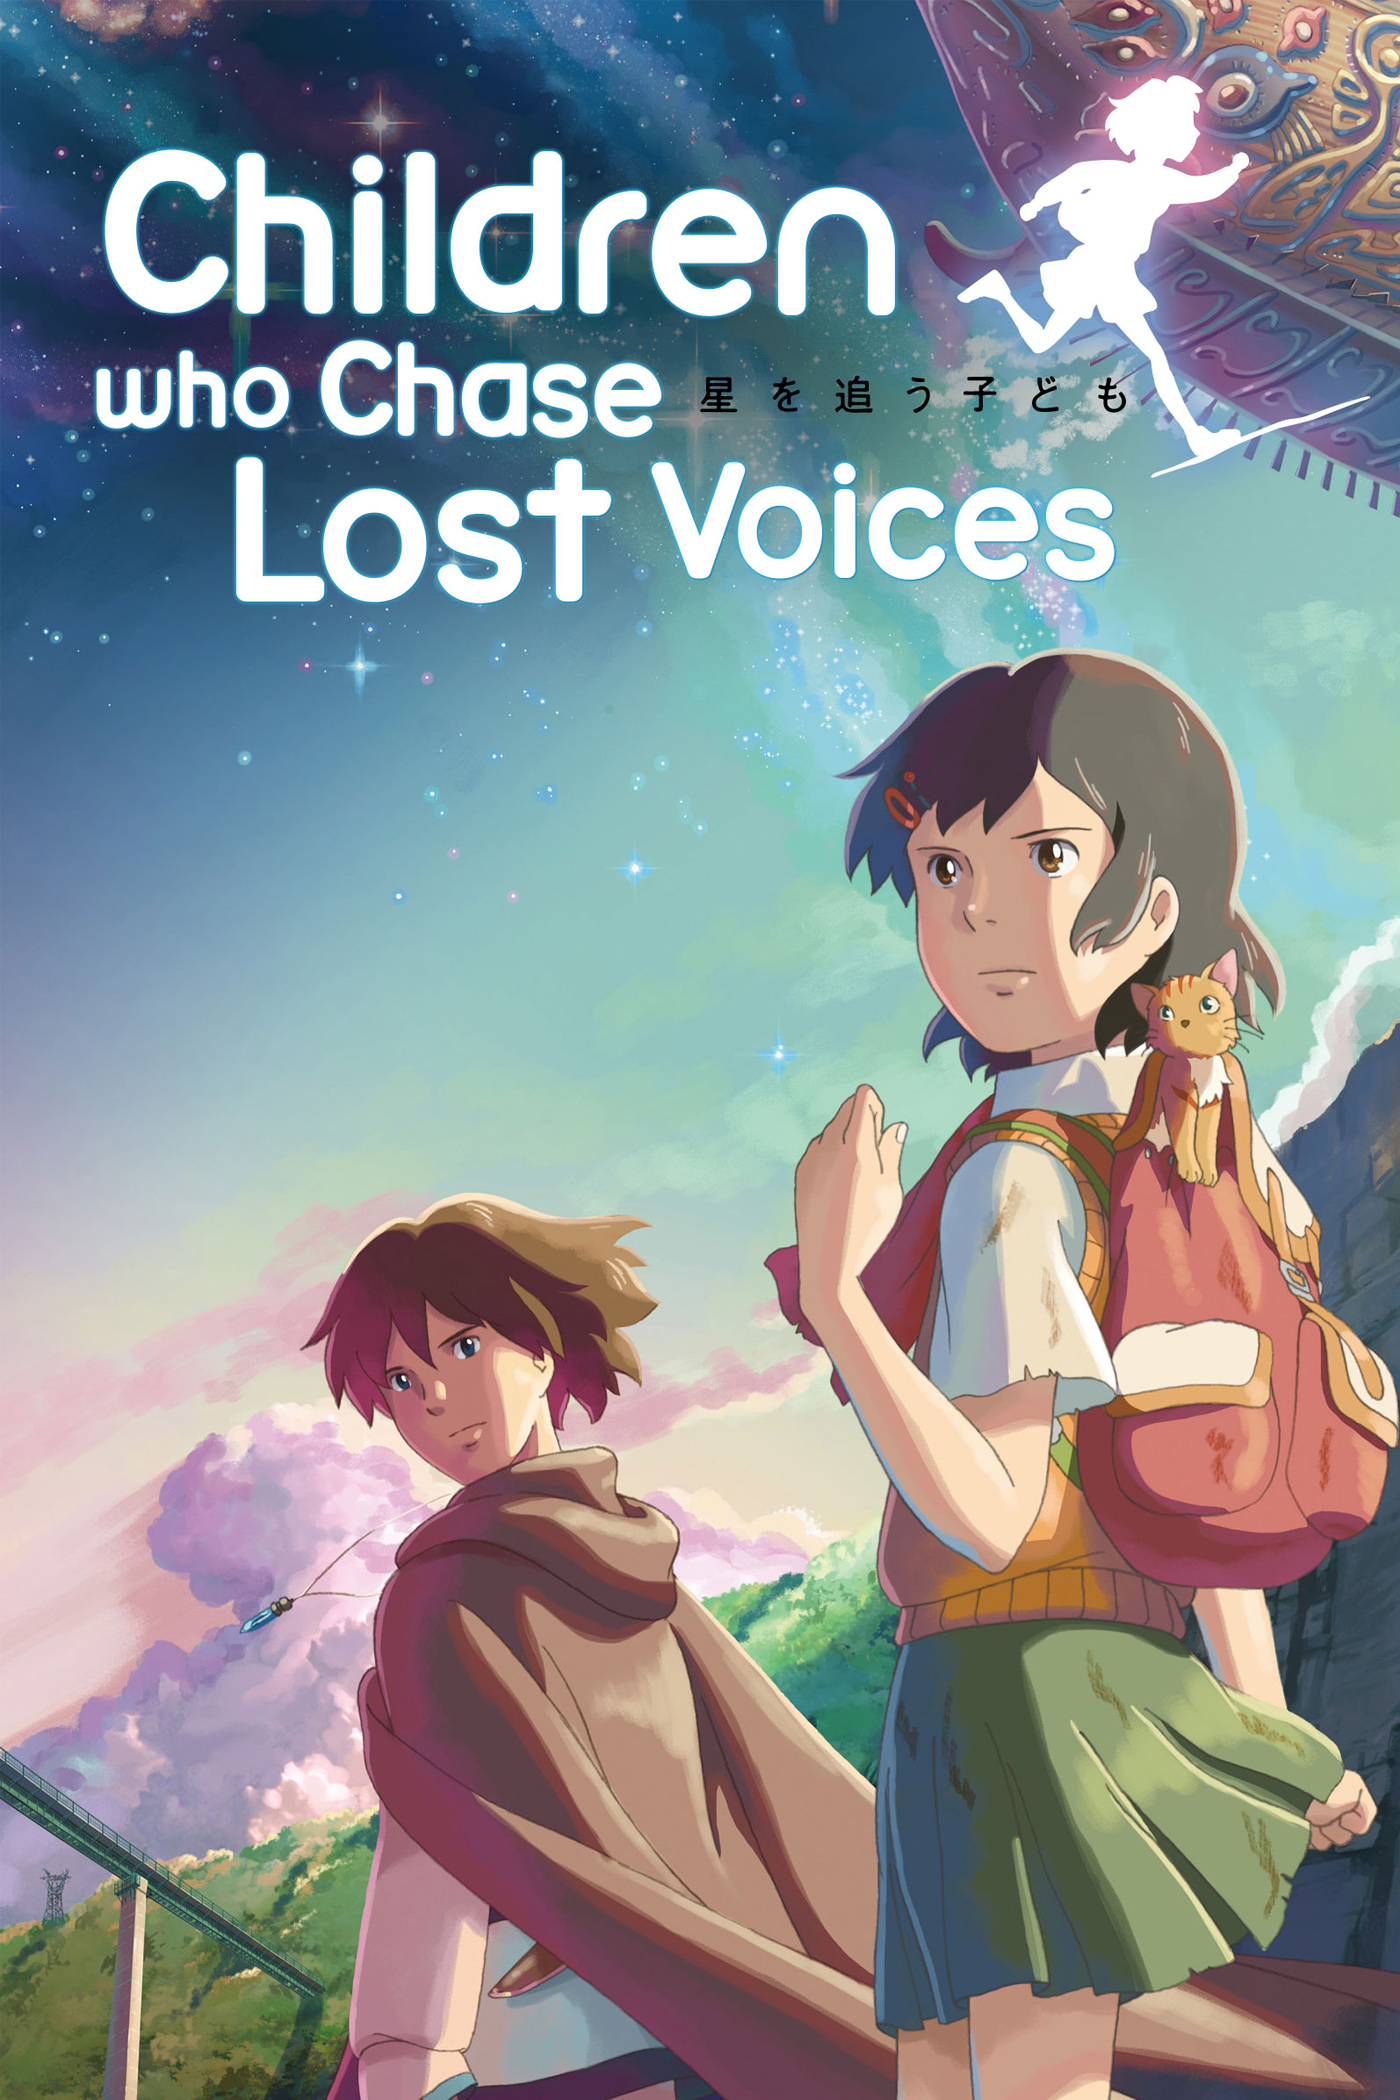 Children Who Chase Lost Voices | Animanga Wiki | FANDOM